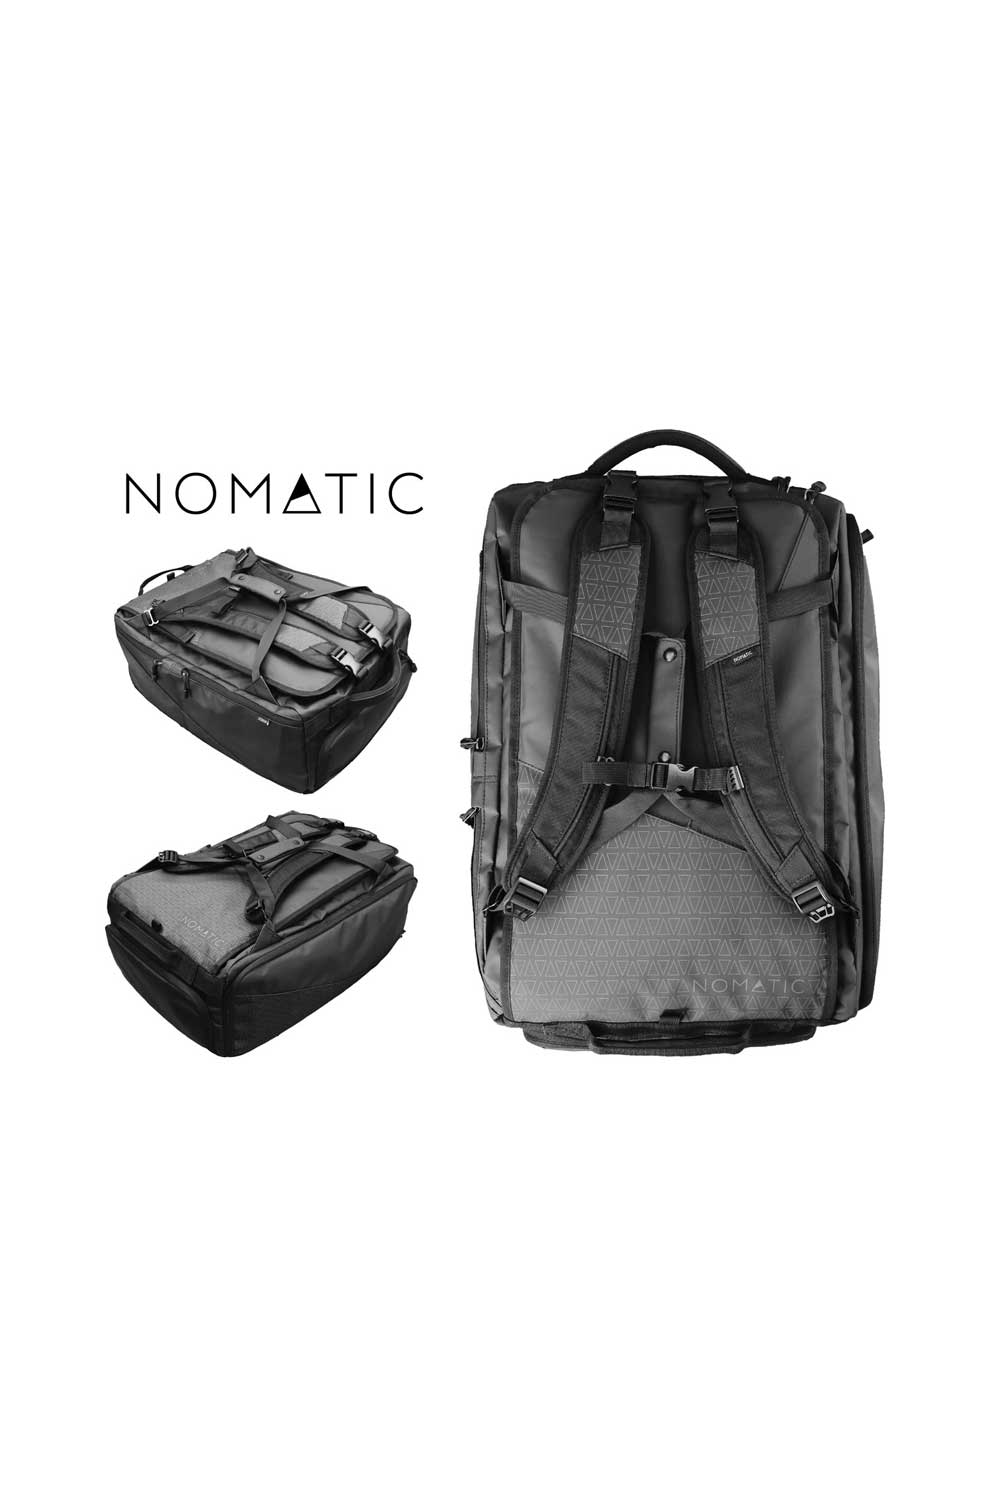 This Travel Bag Solves Your Packing Problems